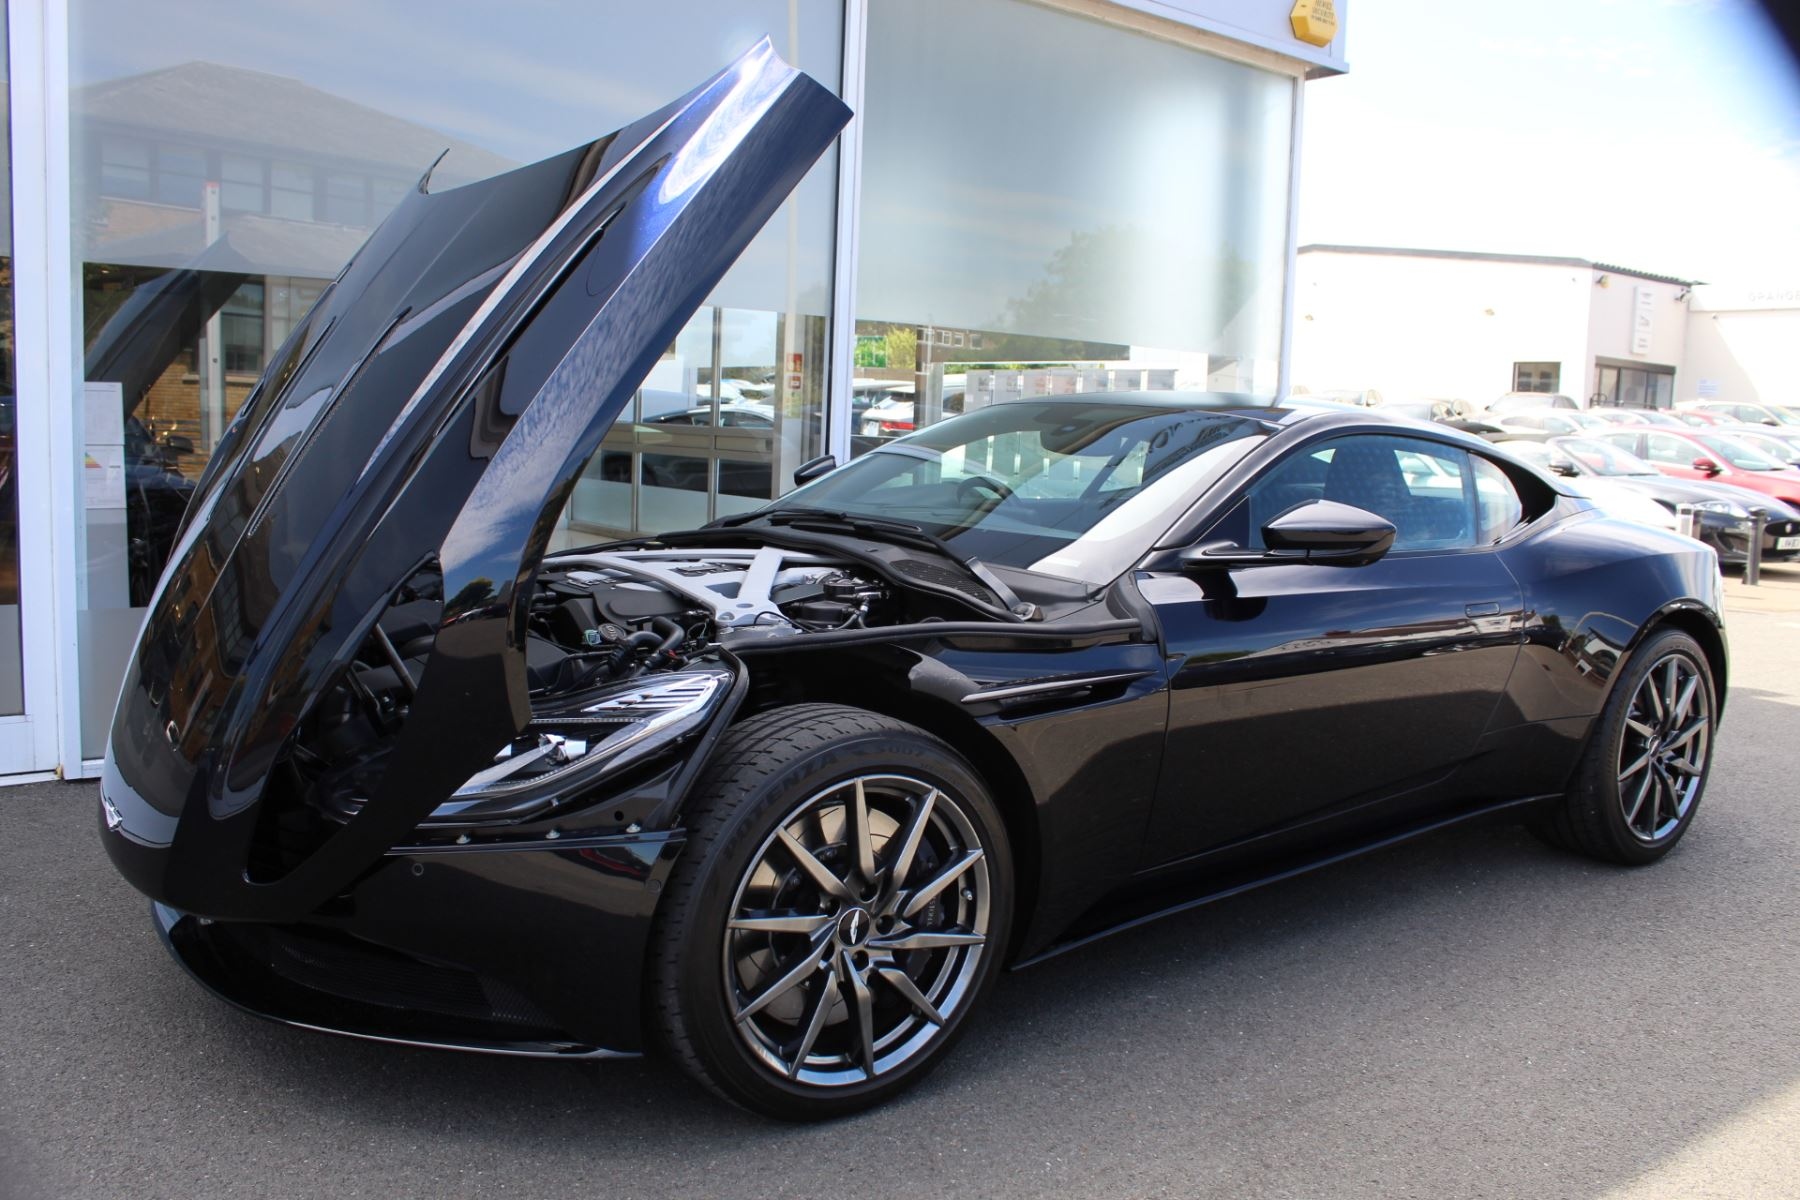 Aston Martin DB11 V12 2dr Touchtronic image 32